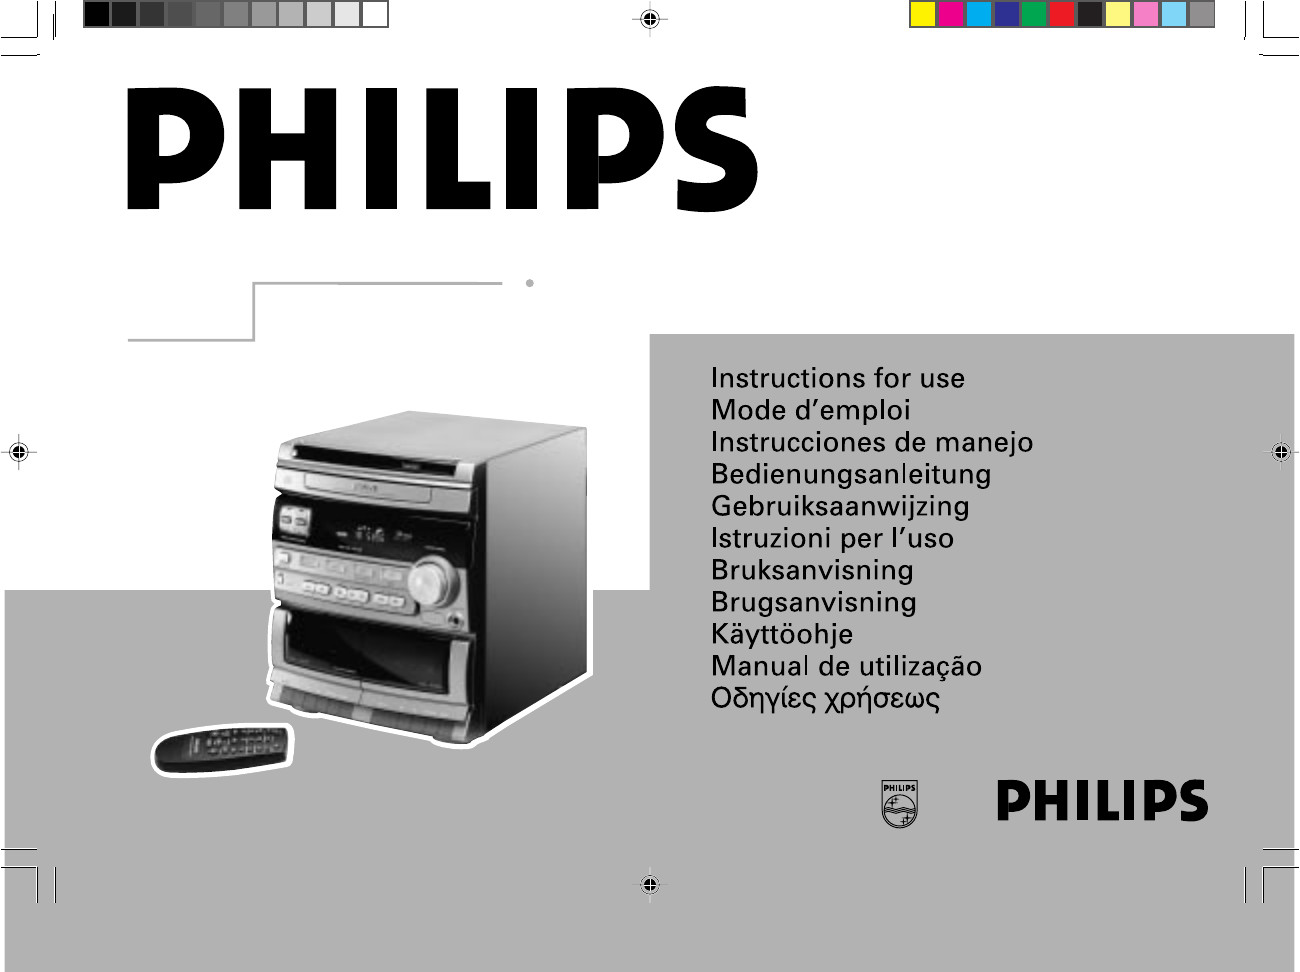 philips stereo system fw 326 user guide manualsonline com rh audio manualsonline com Philips User Guides Philips User Guides